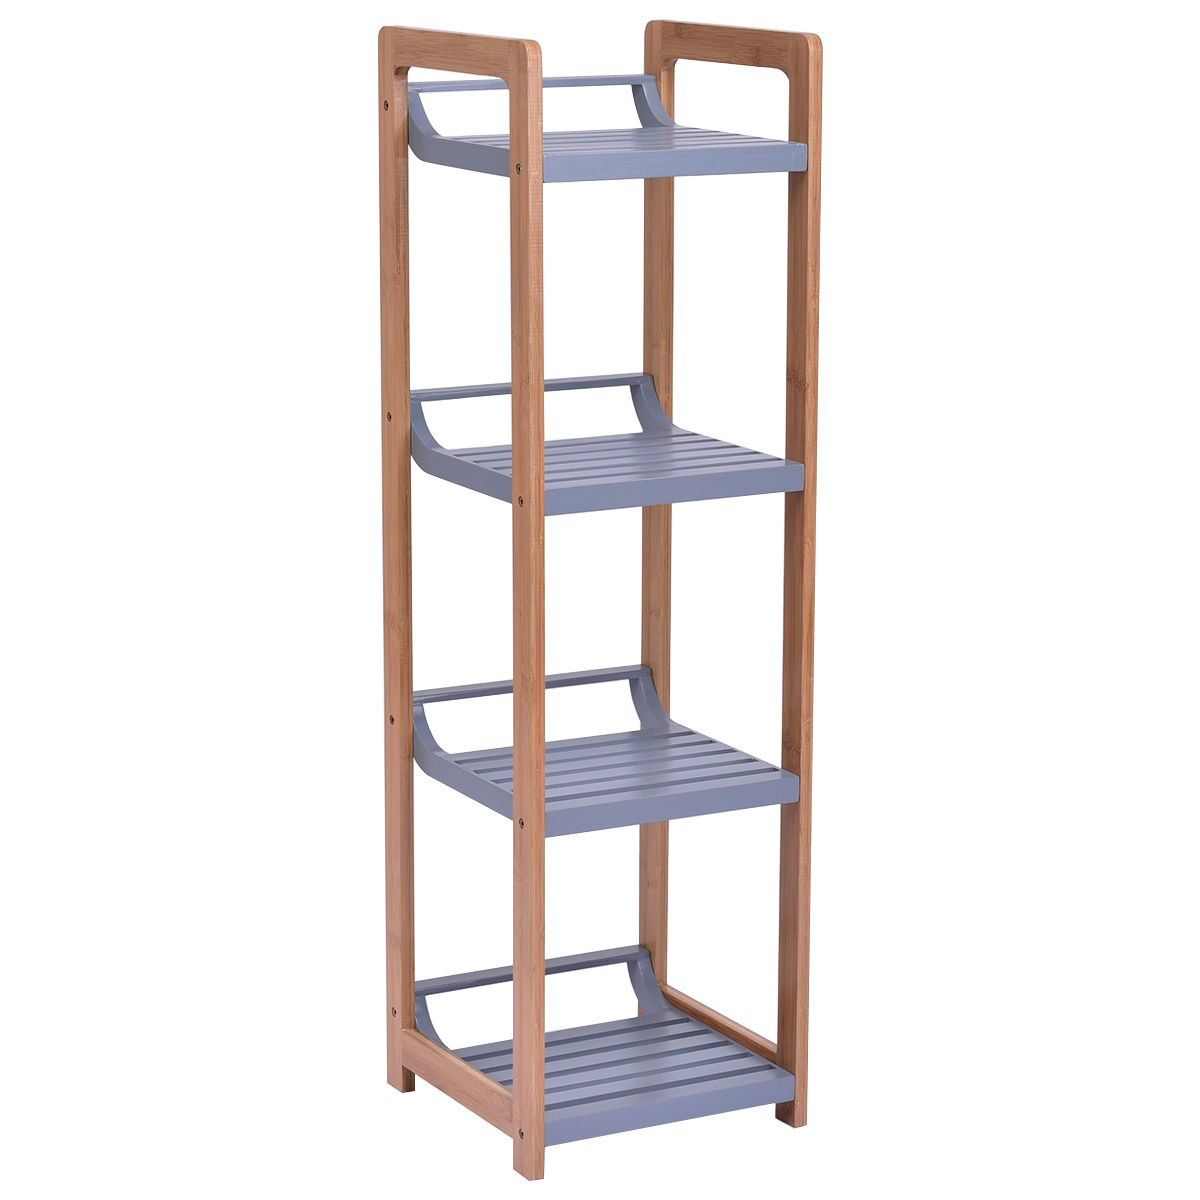 totoshop Multifunction Storage Tower Rack Shelving Shelf Units Stand Bamboo New 4 Tier